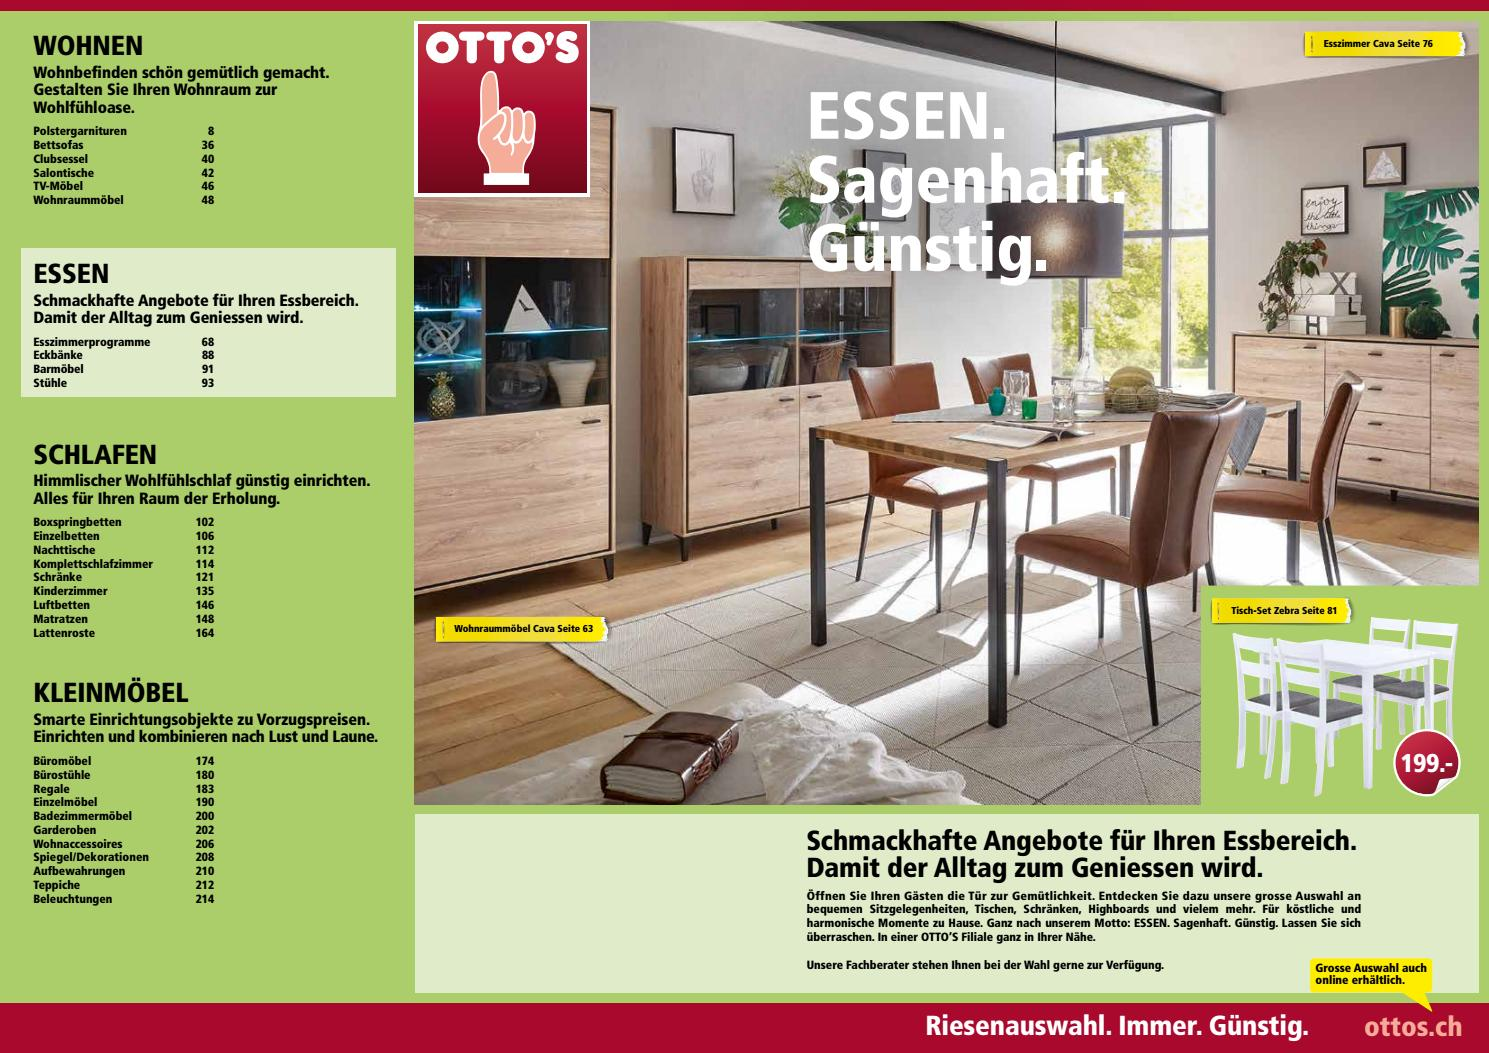 mflyer 20160913 essen de by otto 39 s ag issuu. Black Bedroom Furniture Sets. Home Design Ideas